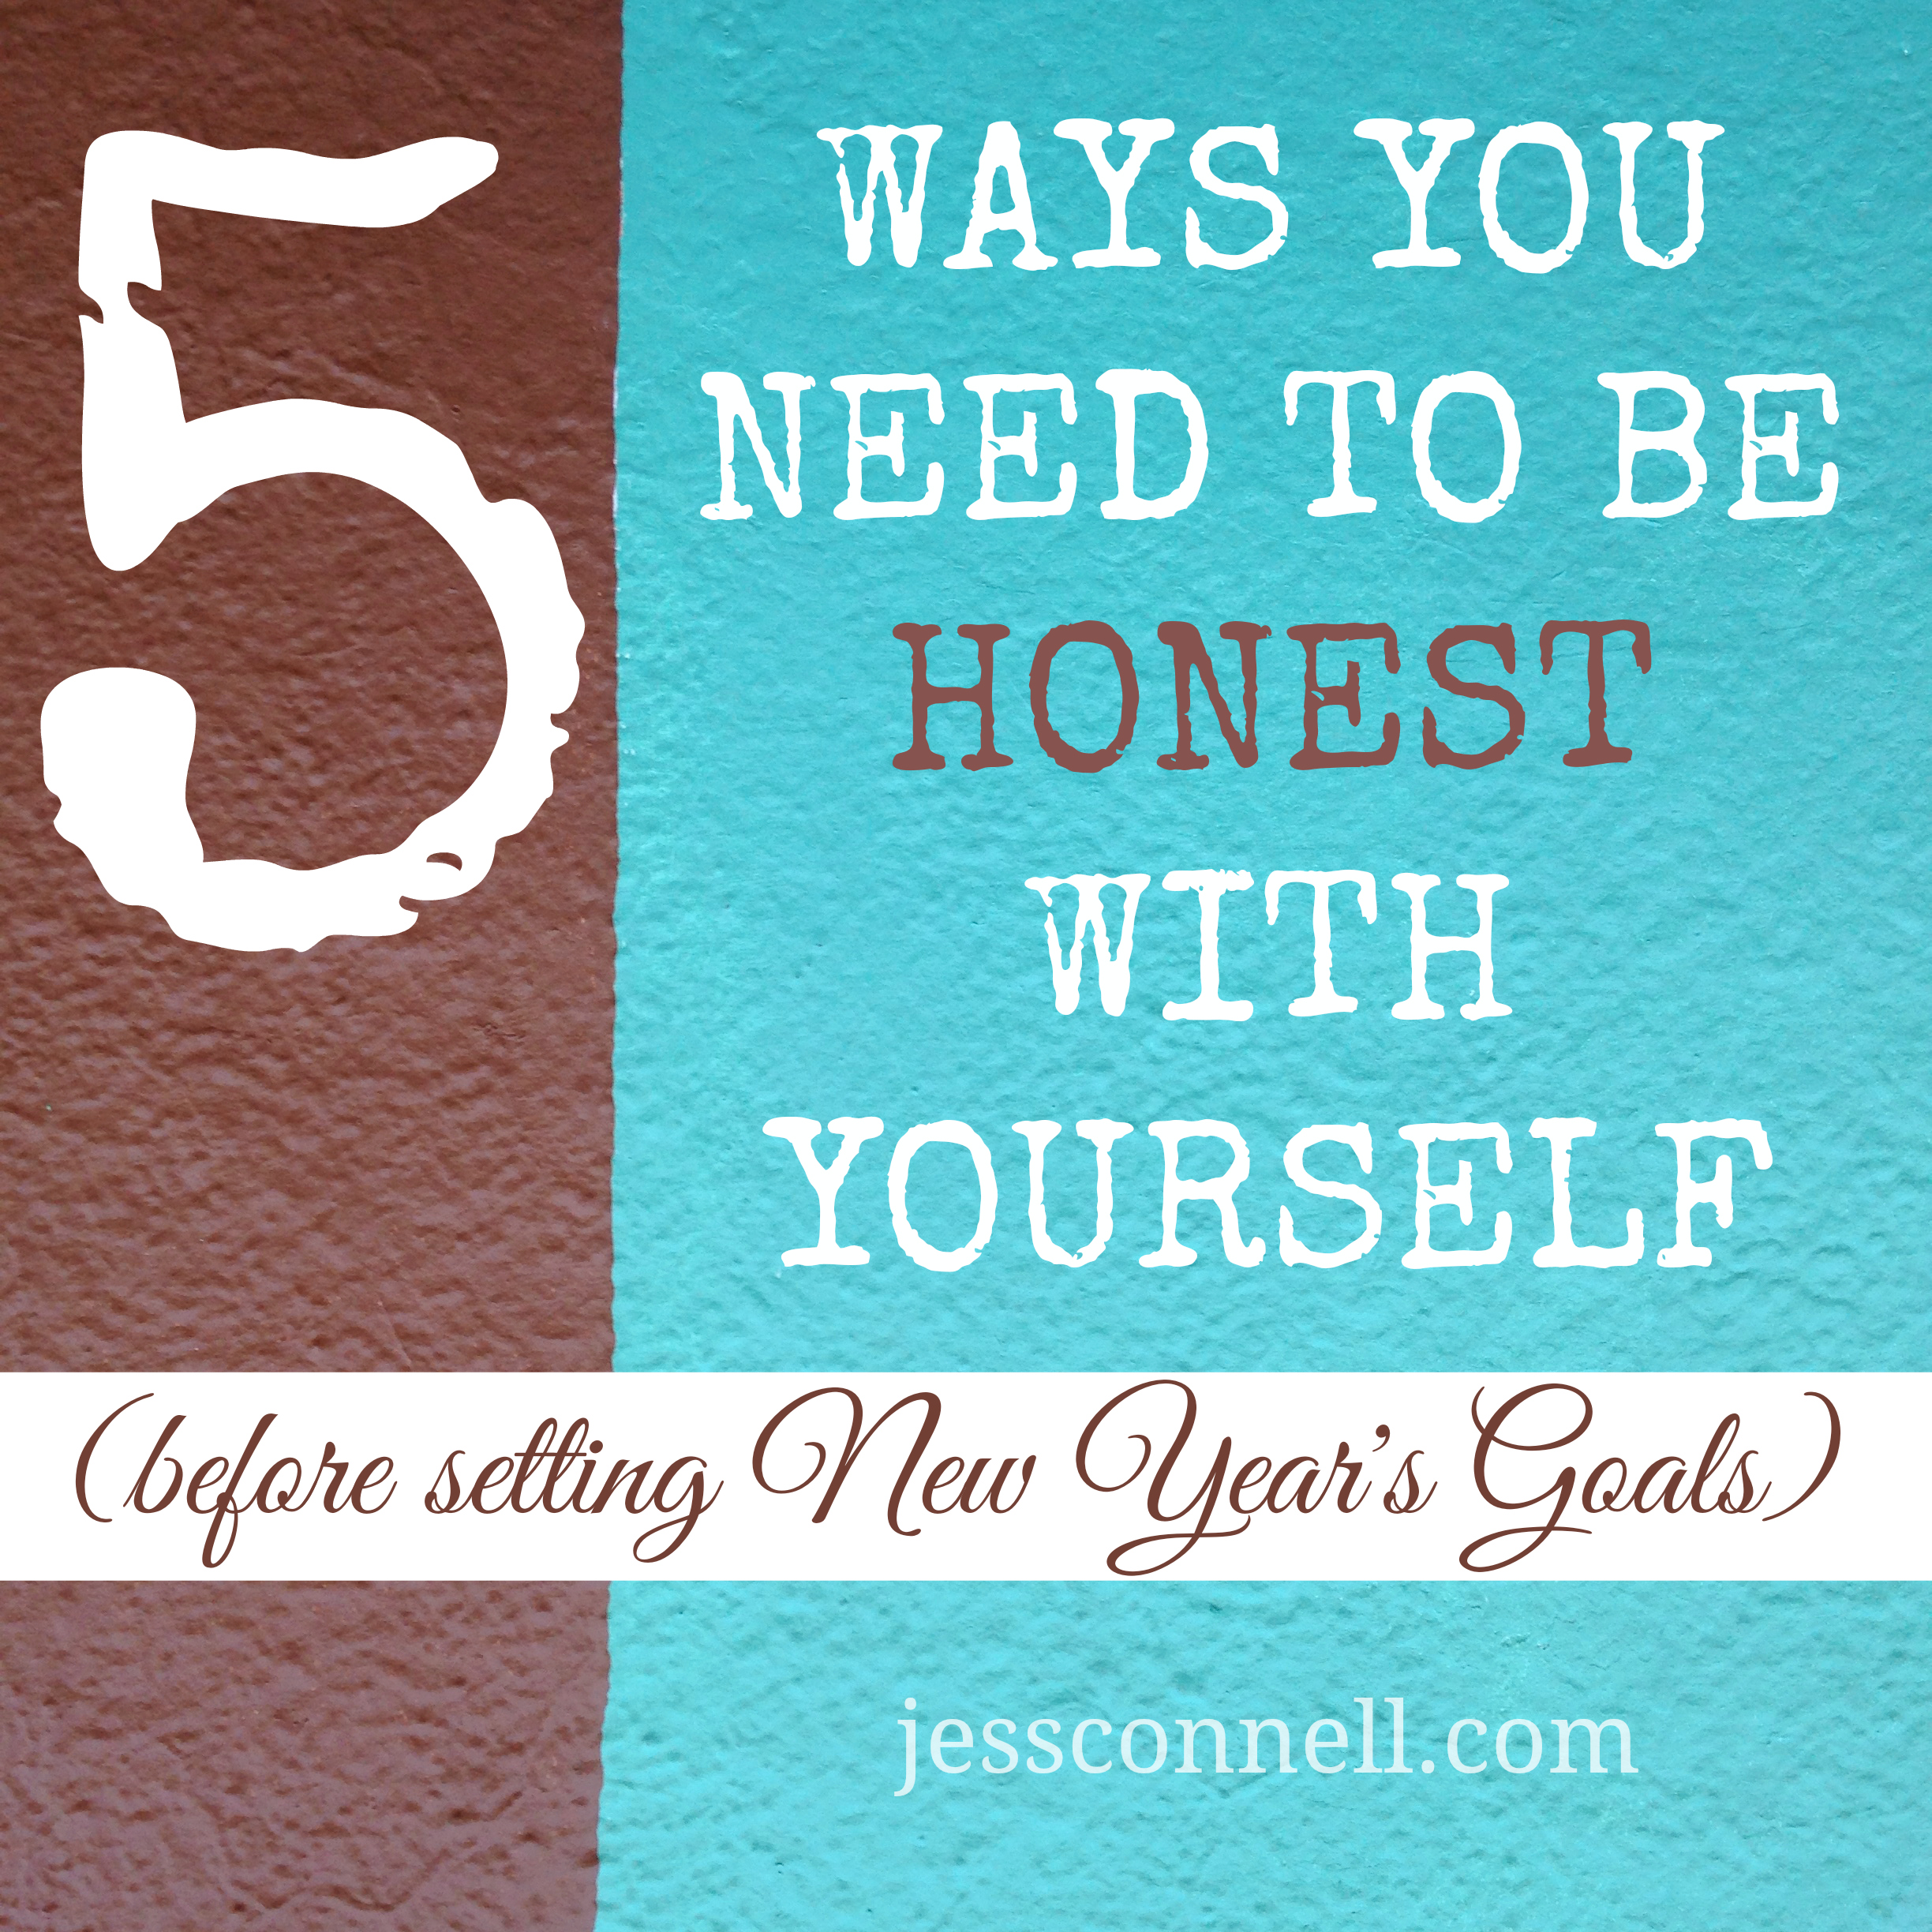 5 Ways You Need to Be HONEST With Yourself (before setting New Year's goals)